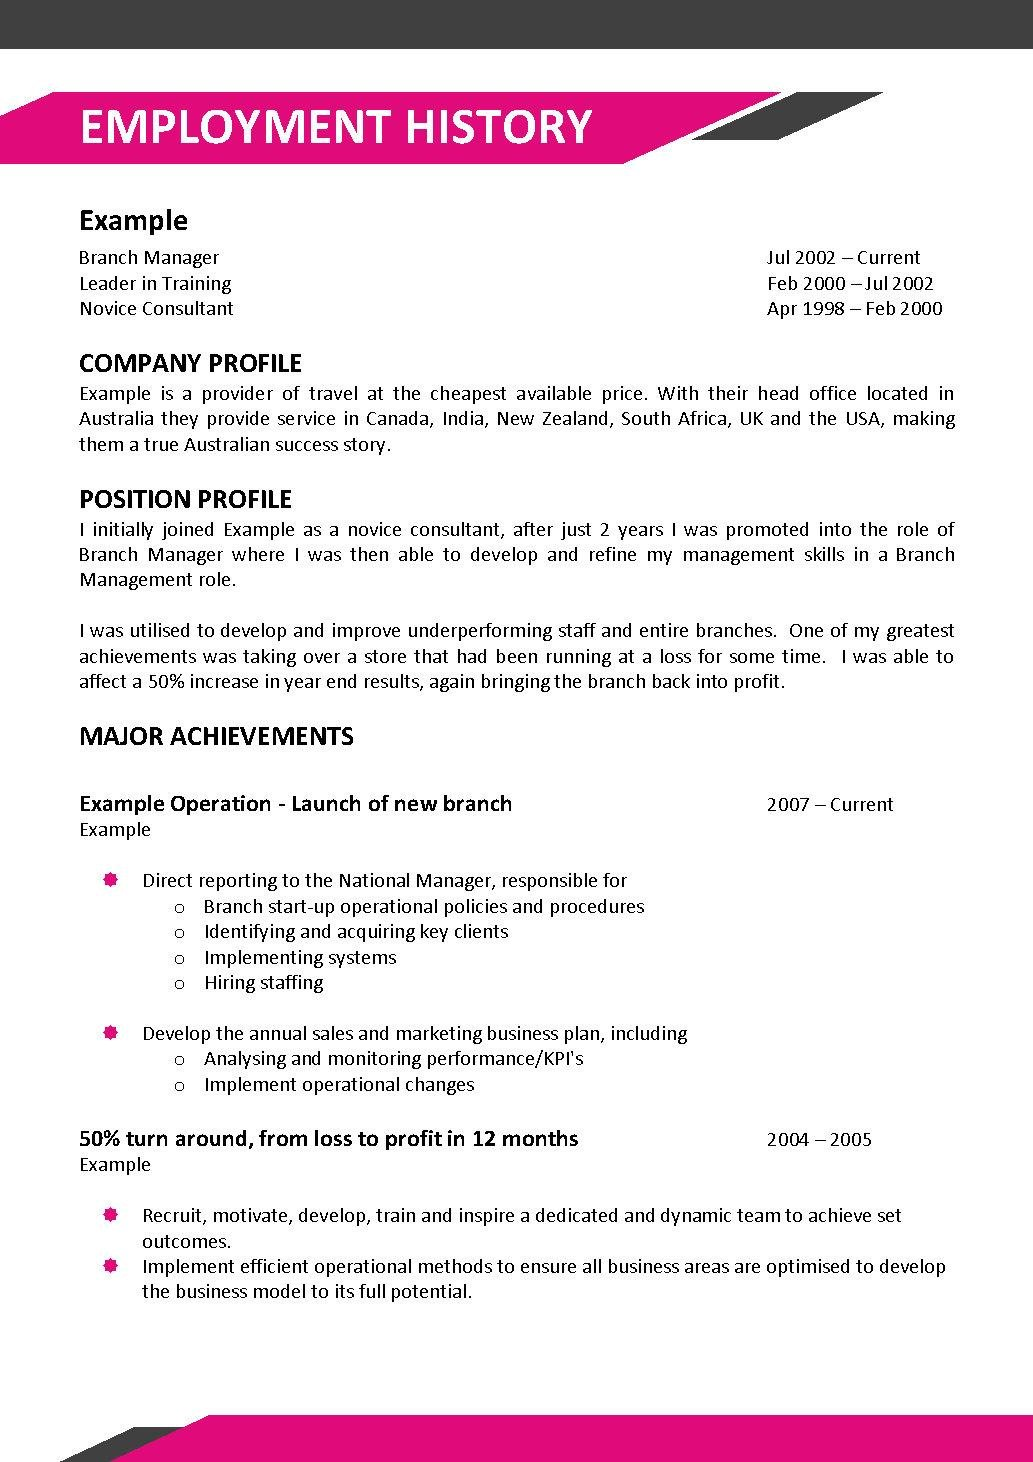 Example Of Australian Resume : Example Resume Marketing Manager ...